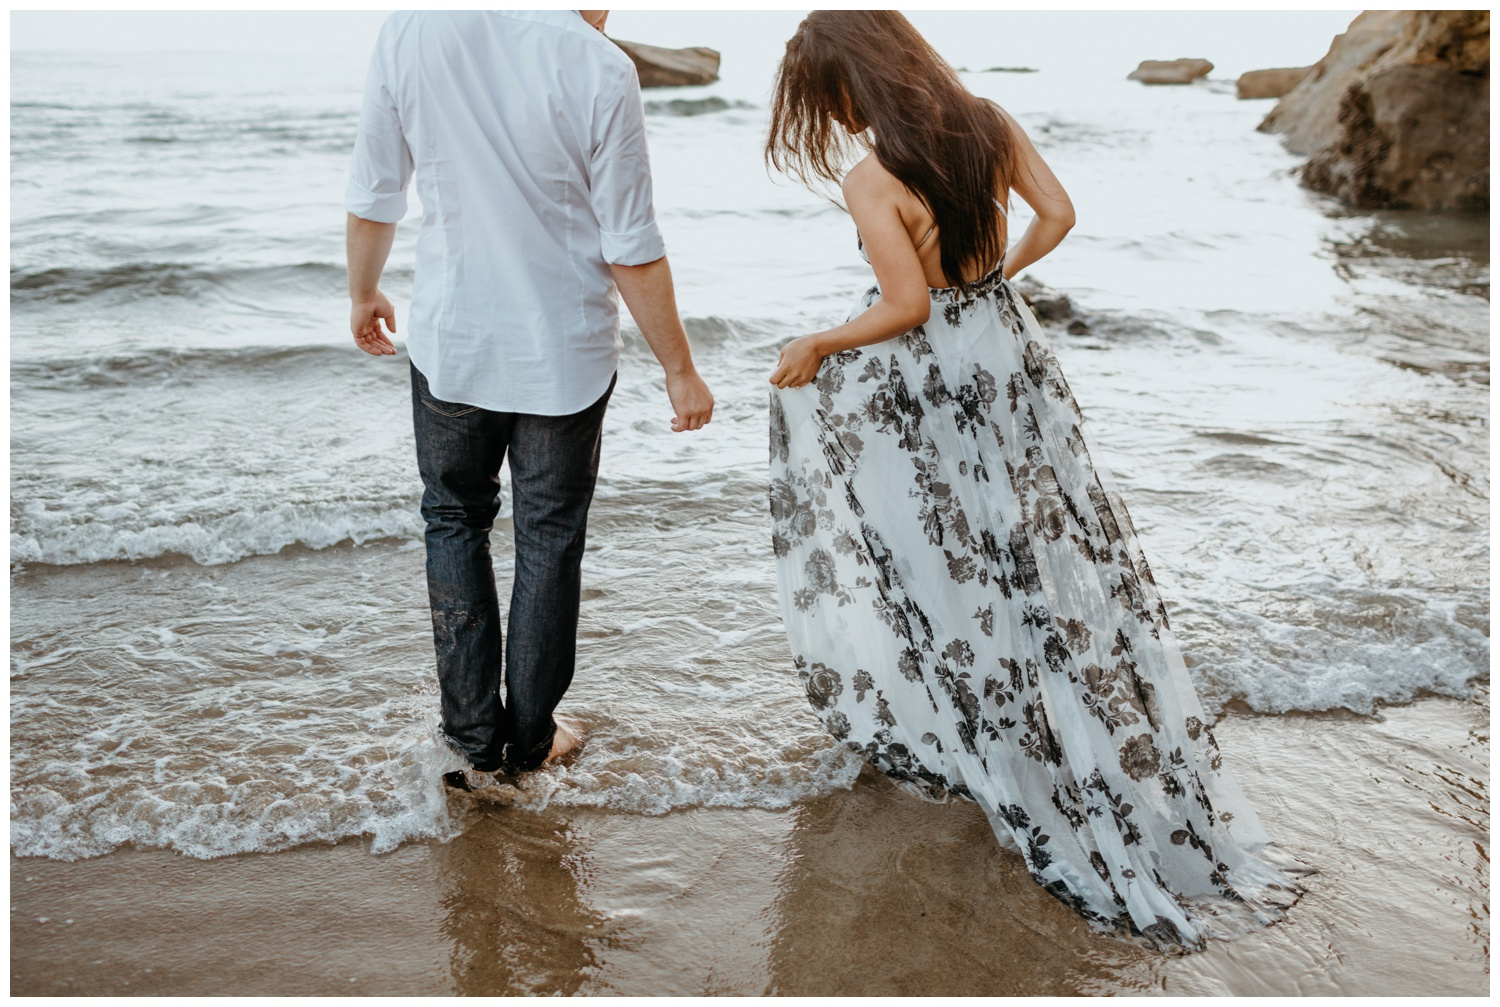 cape_kiwanda_beach_engagement_shoot_0069.jpg